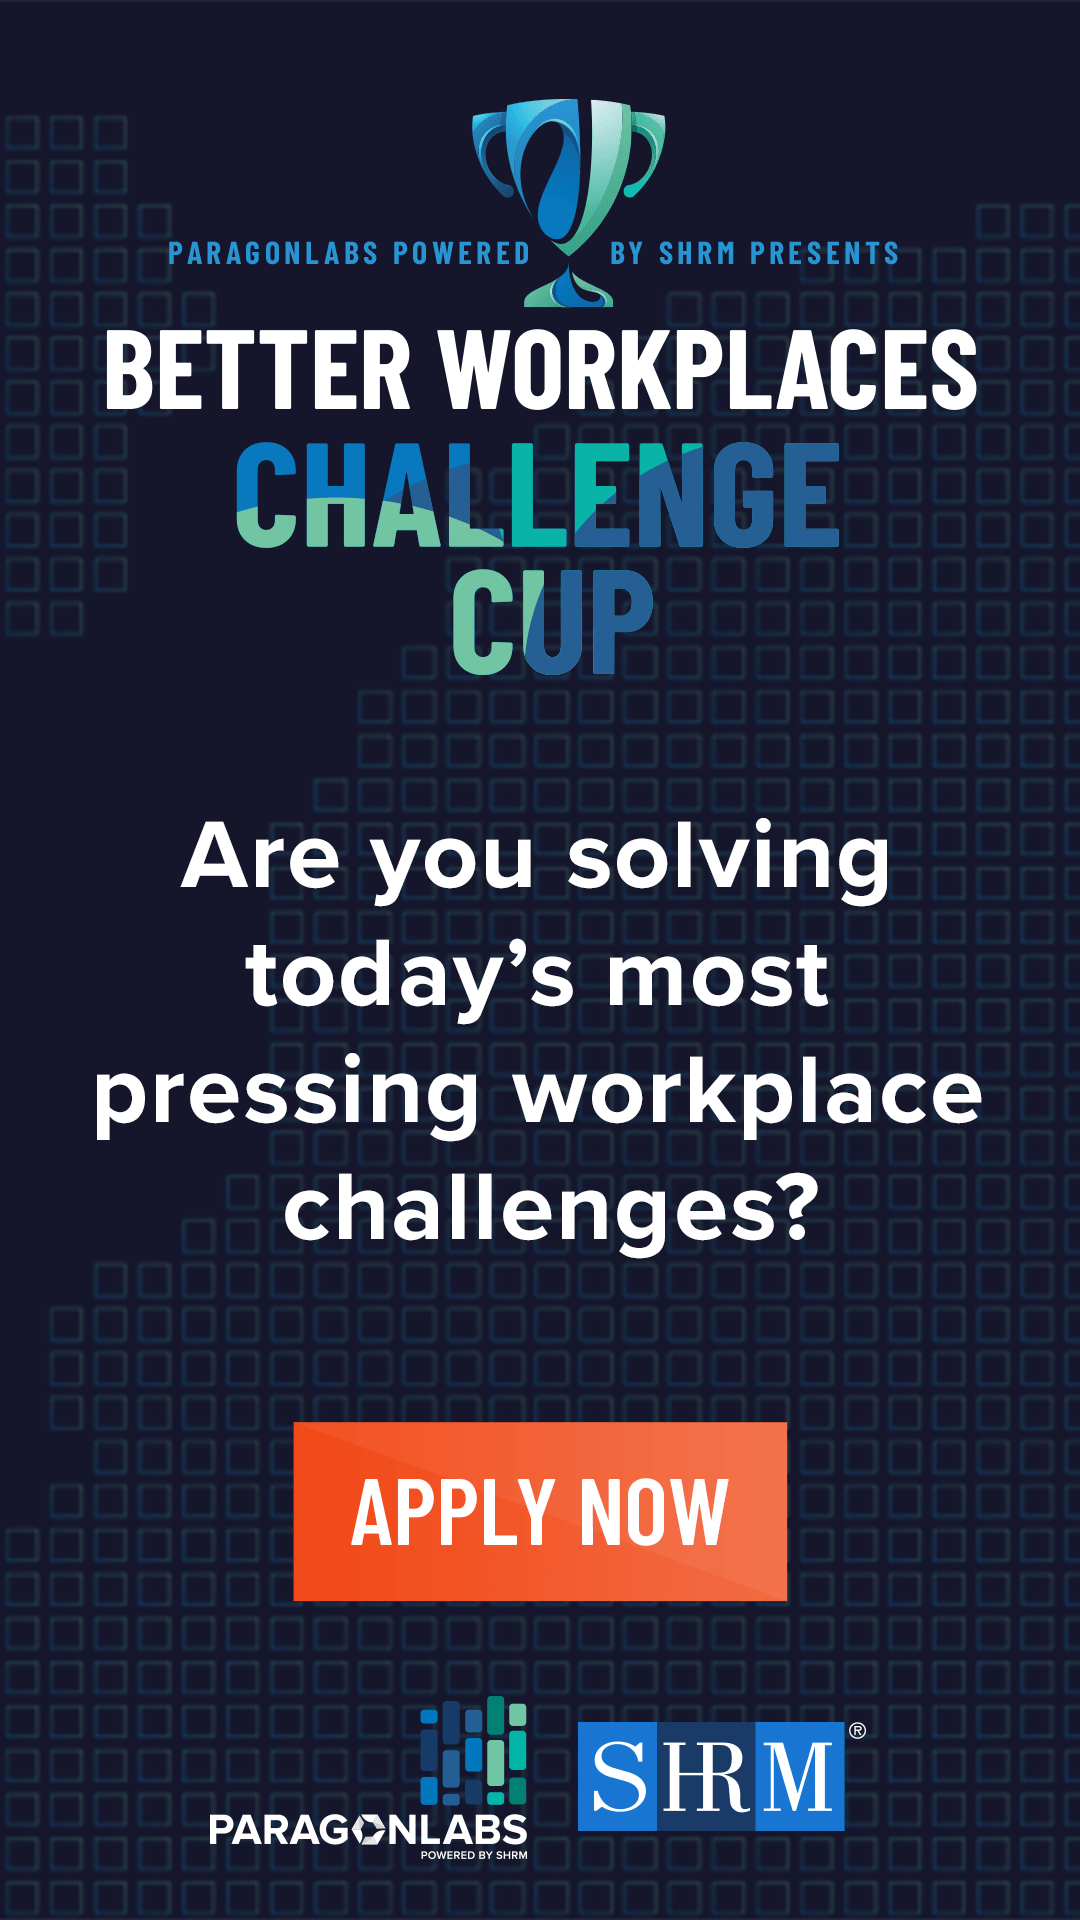 Better-Workplaces-Cup-Challenge